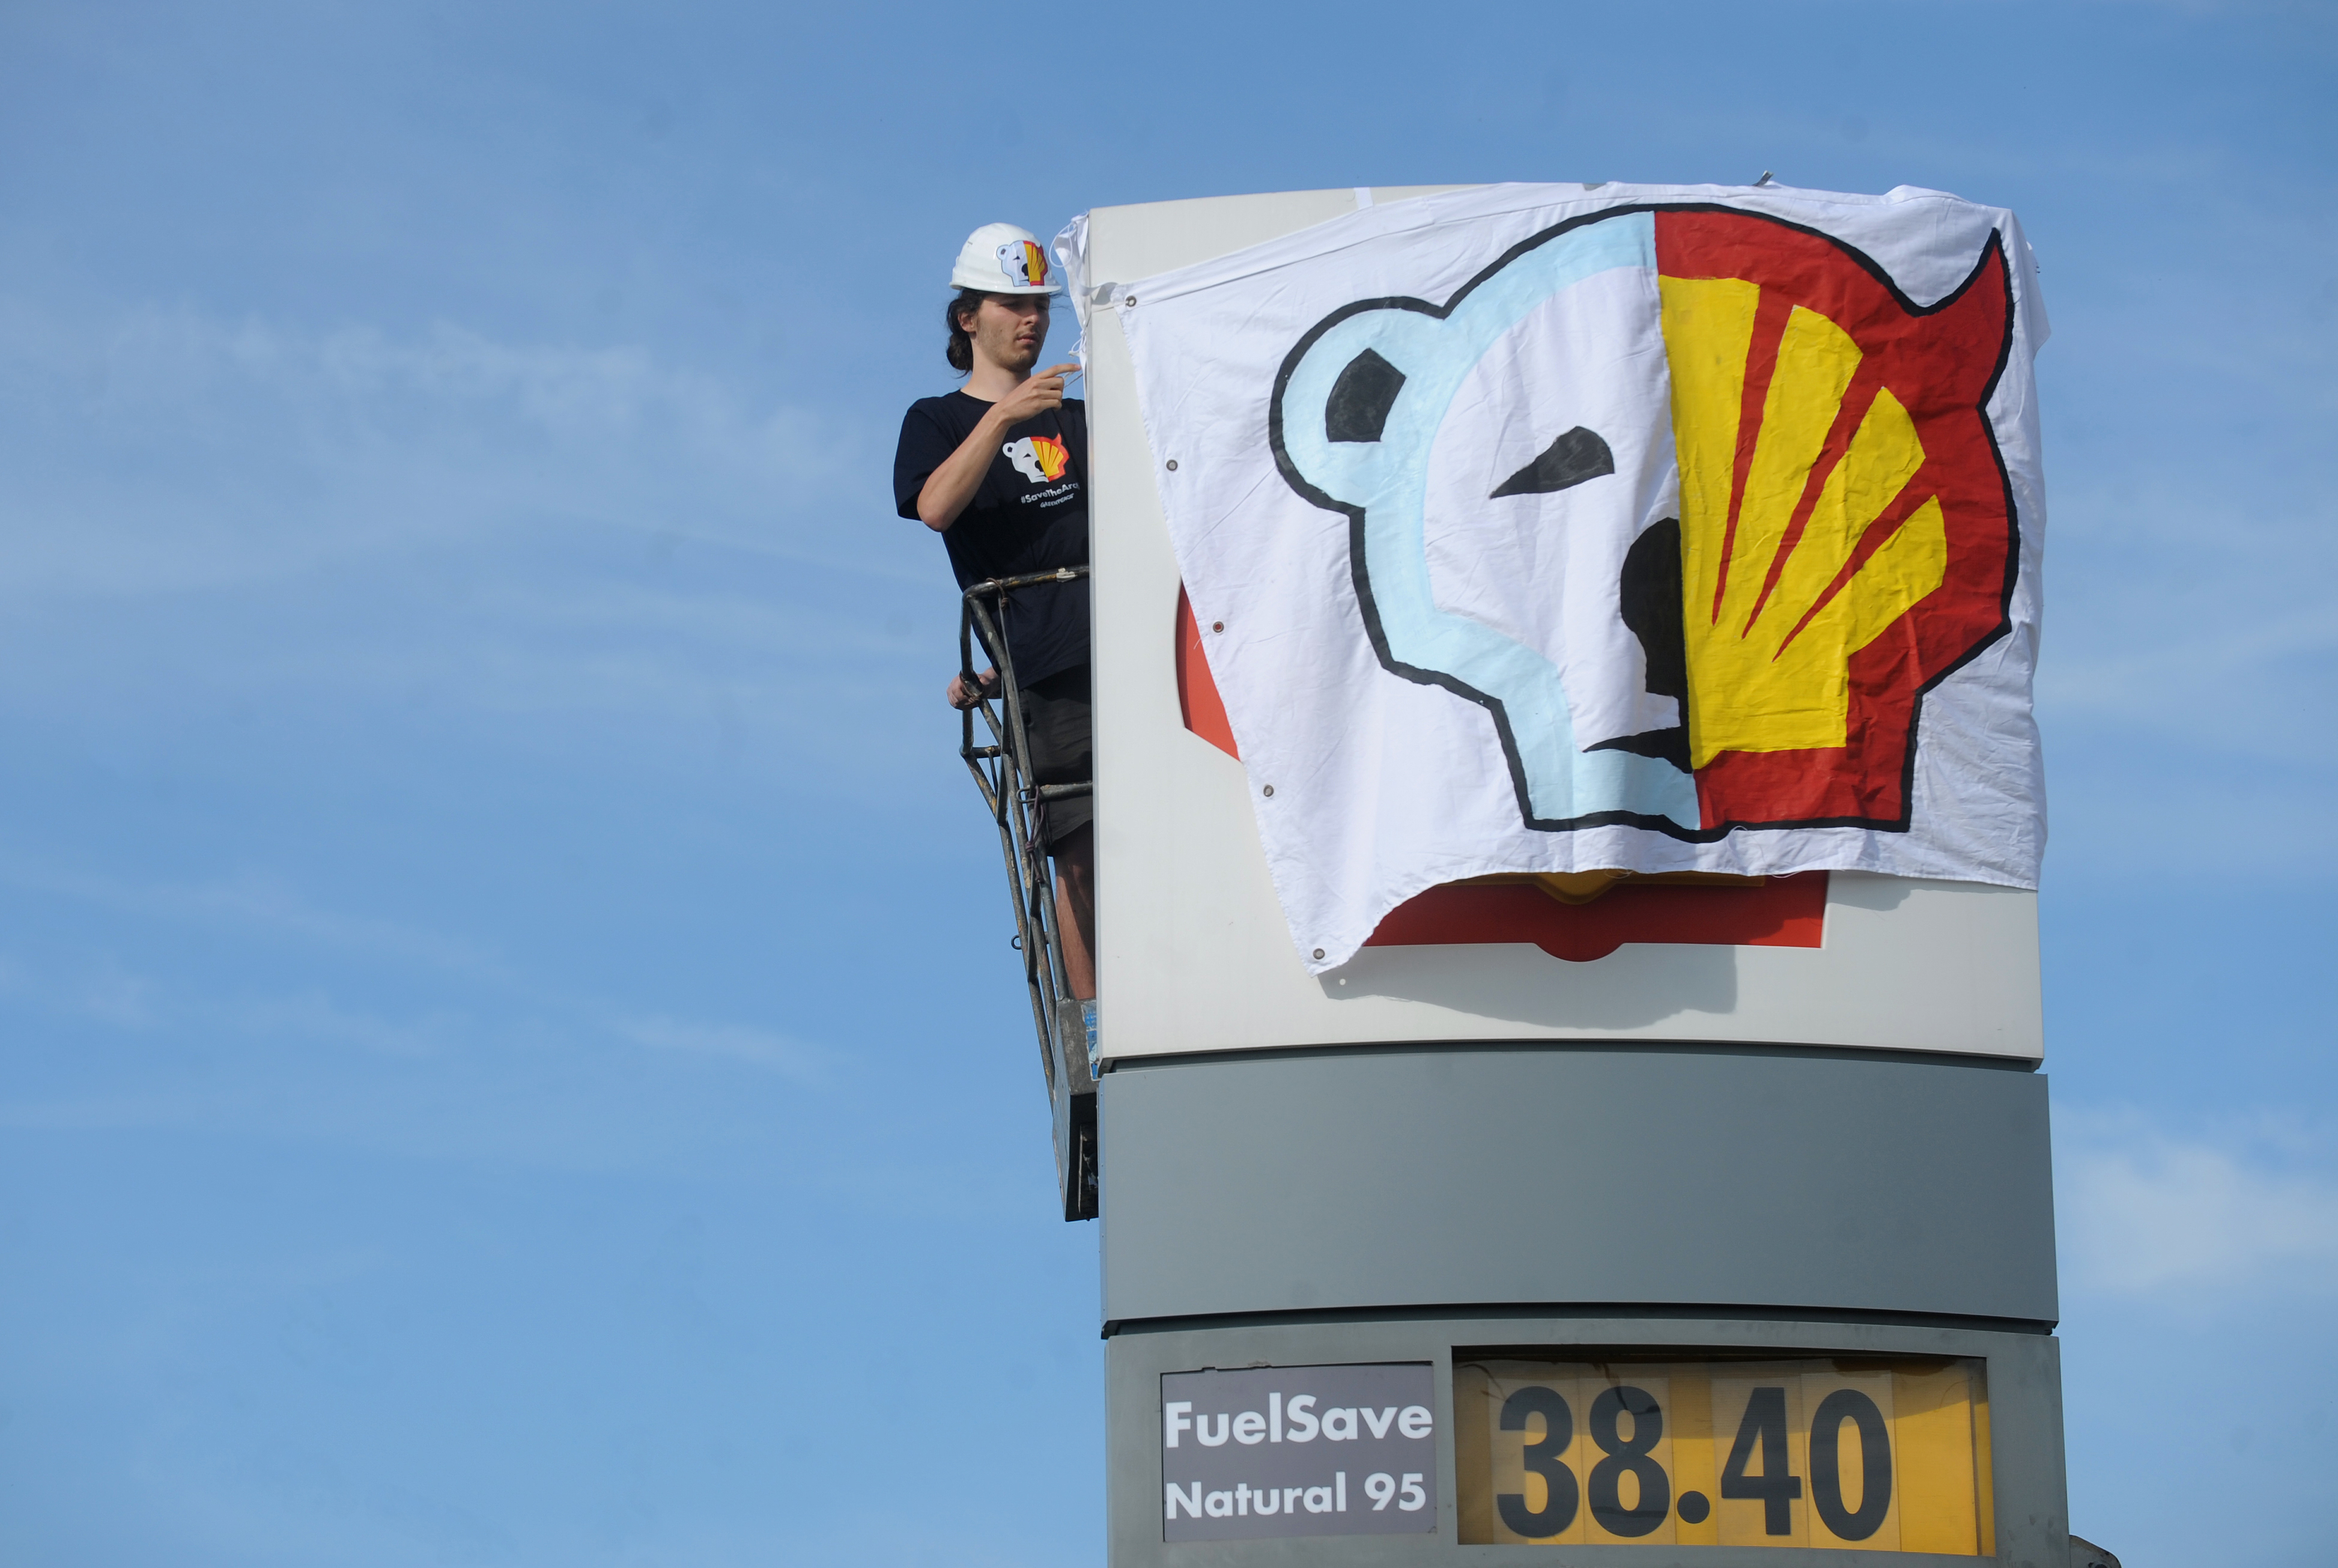 A Greenpeace activist covers the logo of